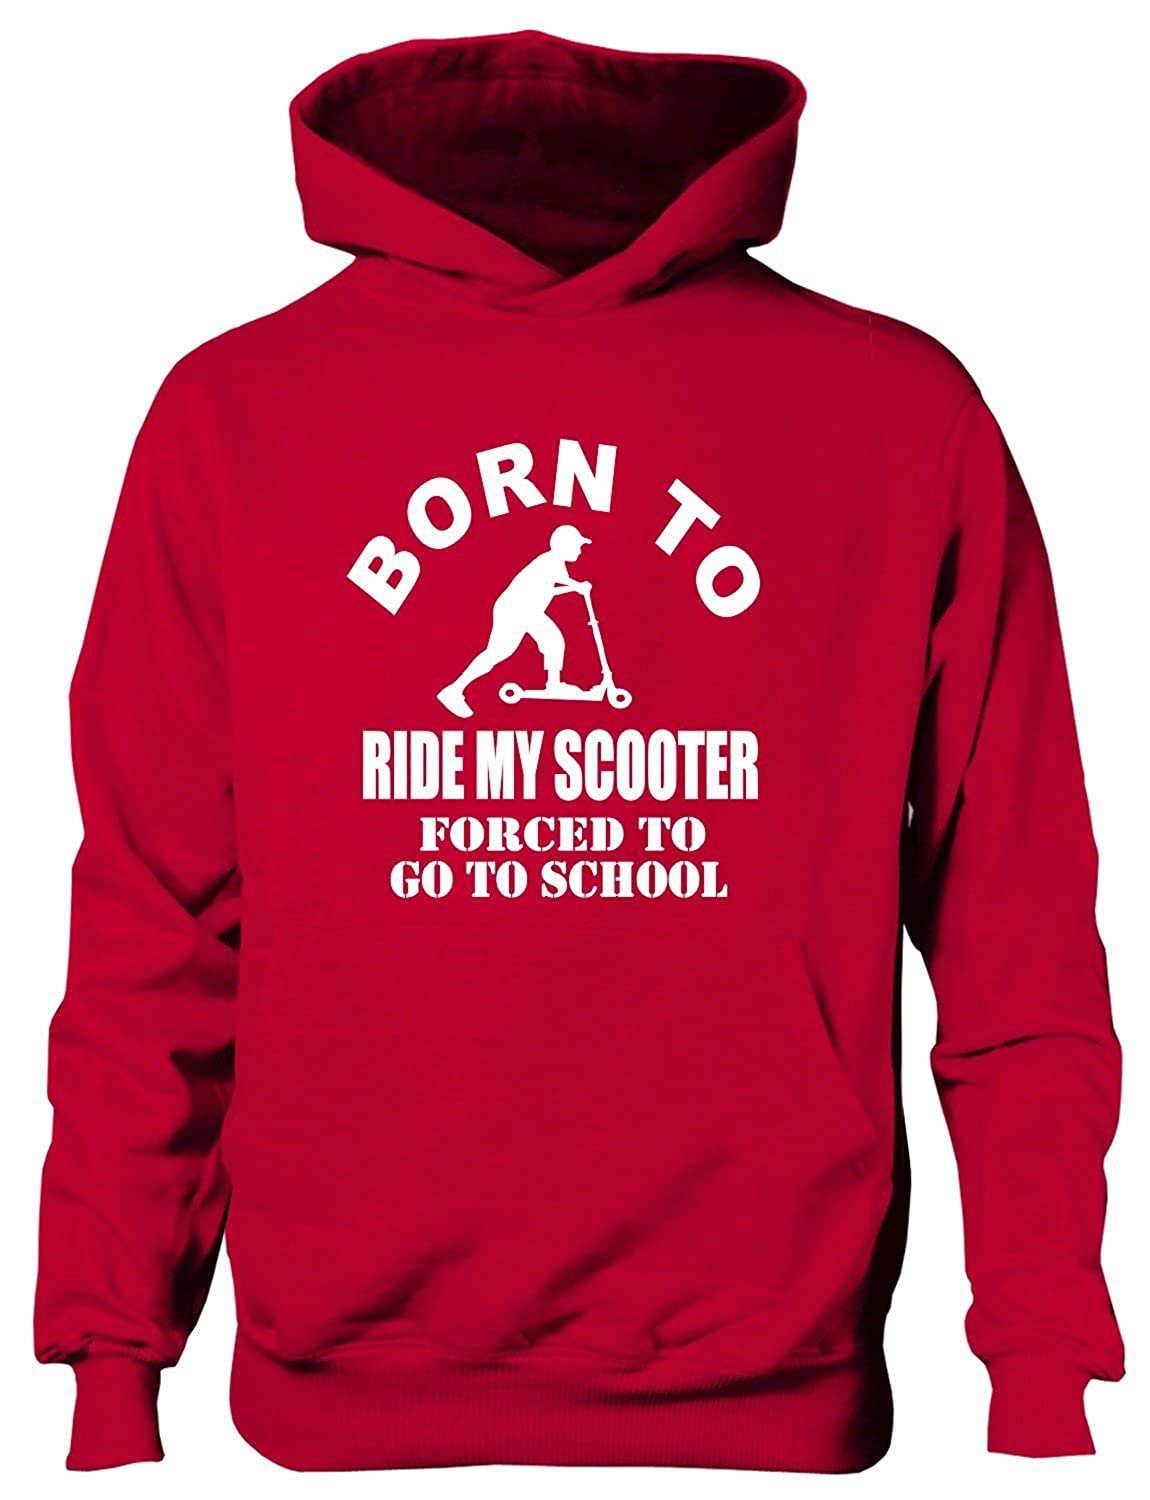 Born to Ride My Scooter Forced to Go to School Kids Hoodie Sizes 1-13 Years